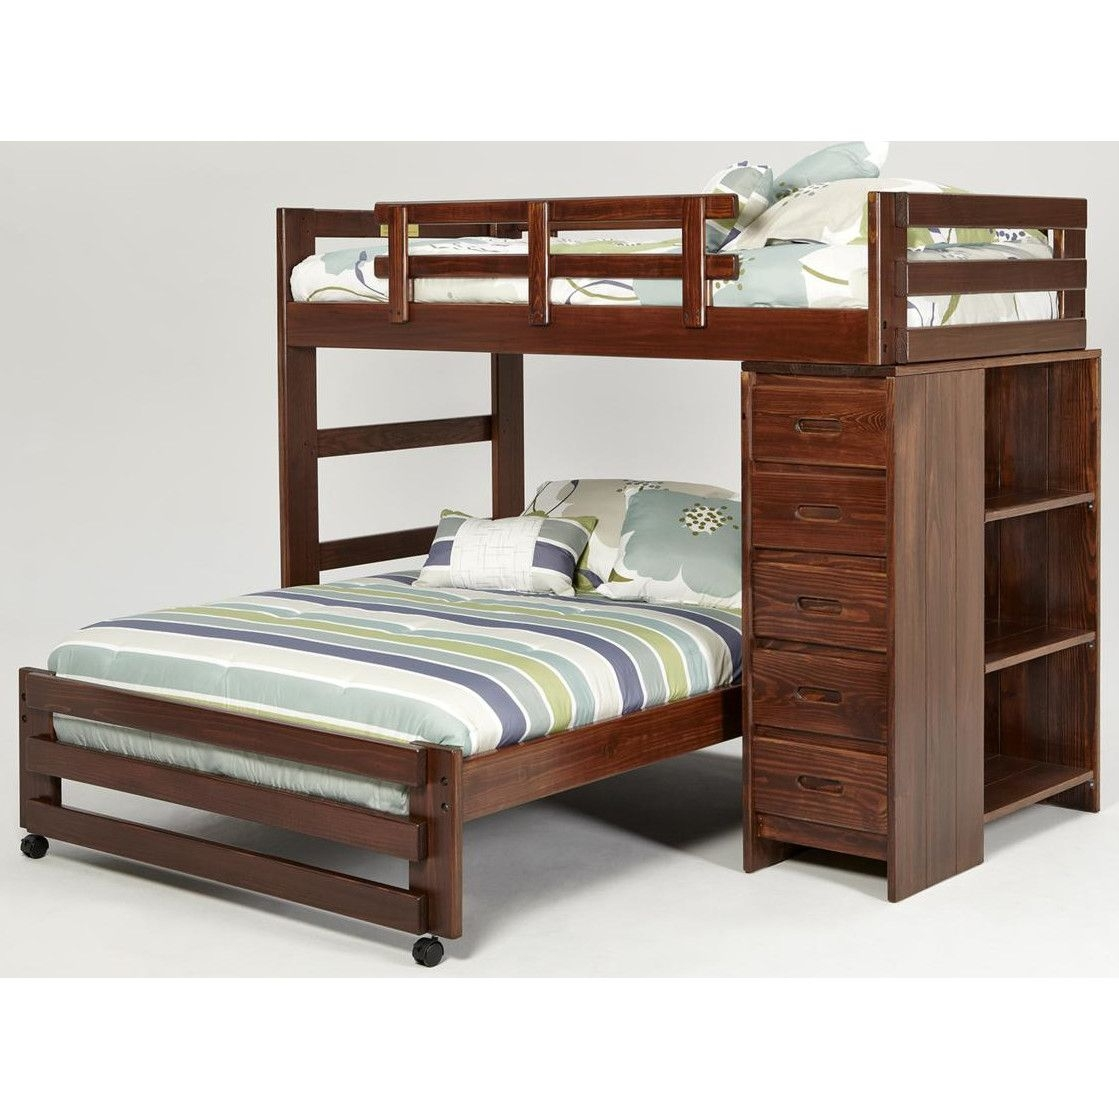 Twin over Full L-Shaped Bunk Bed with 5 Drawer Chest and Bookshelf End